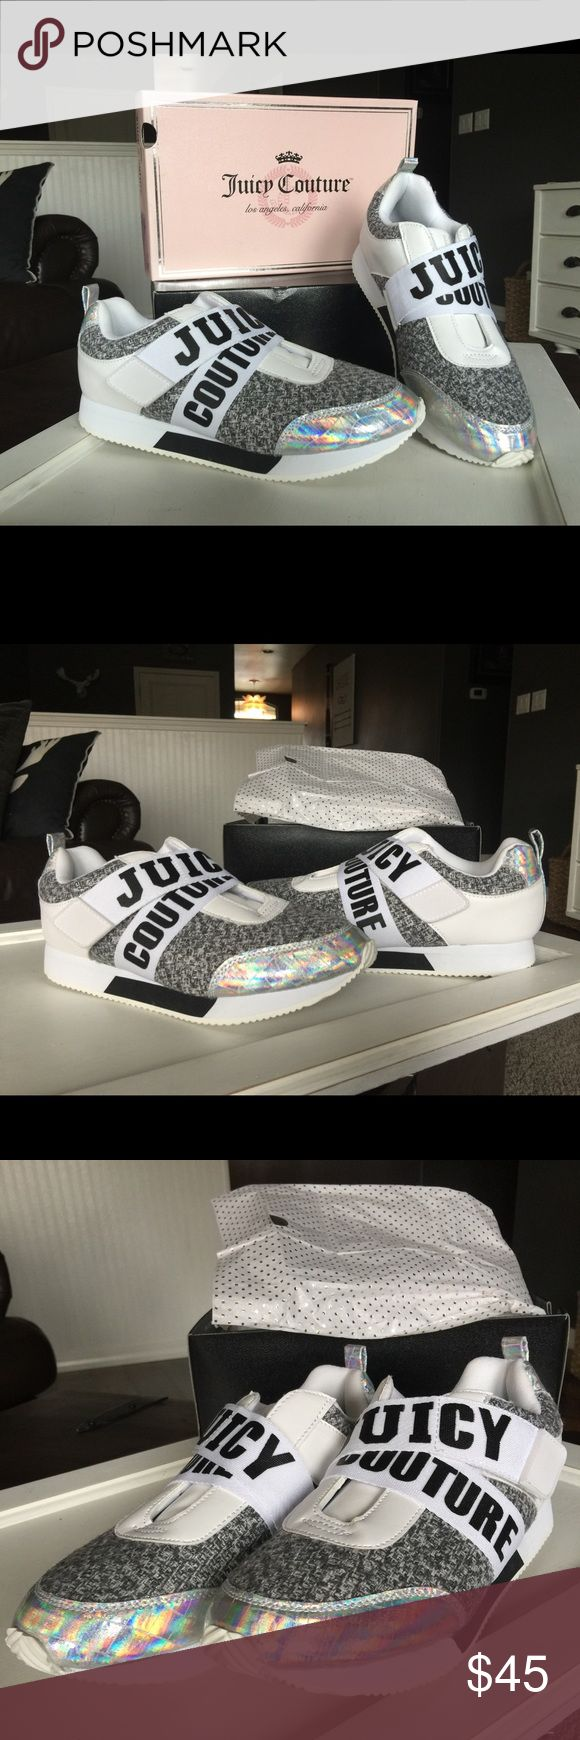 Juicy Couture tennis shoes NIB New Juicy Couture shoes. Black & white & shiny iridescent colors. Juicy Couture Shoes Athletic Shoes